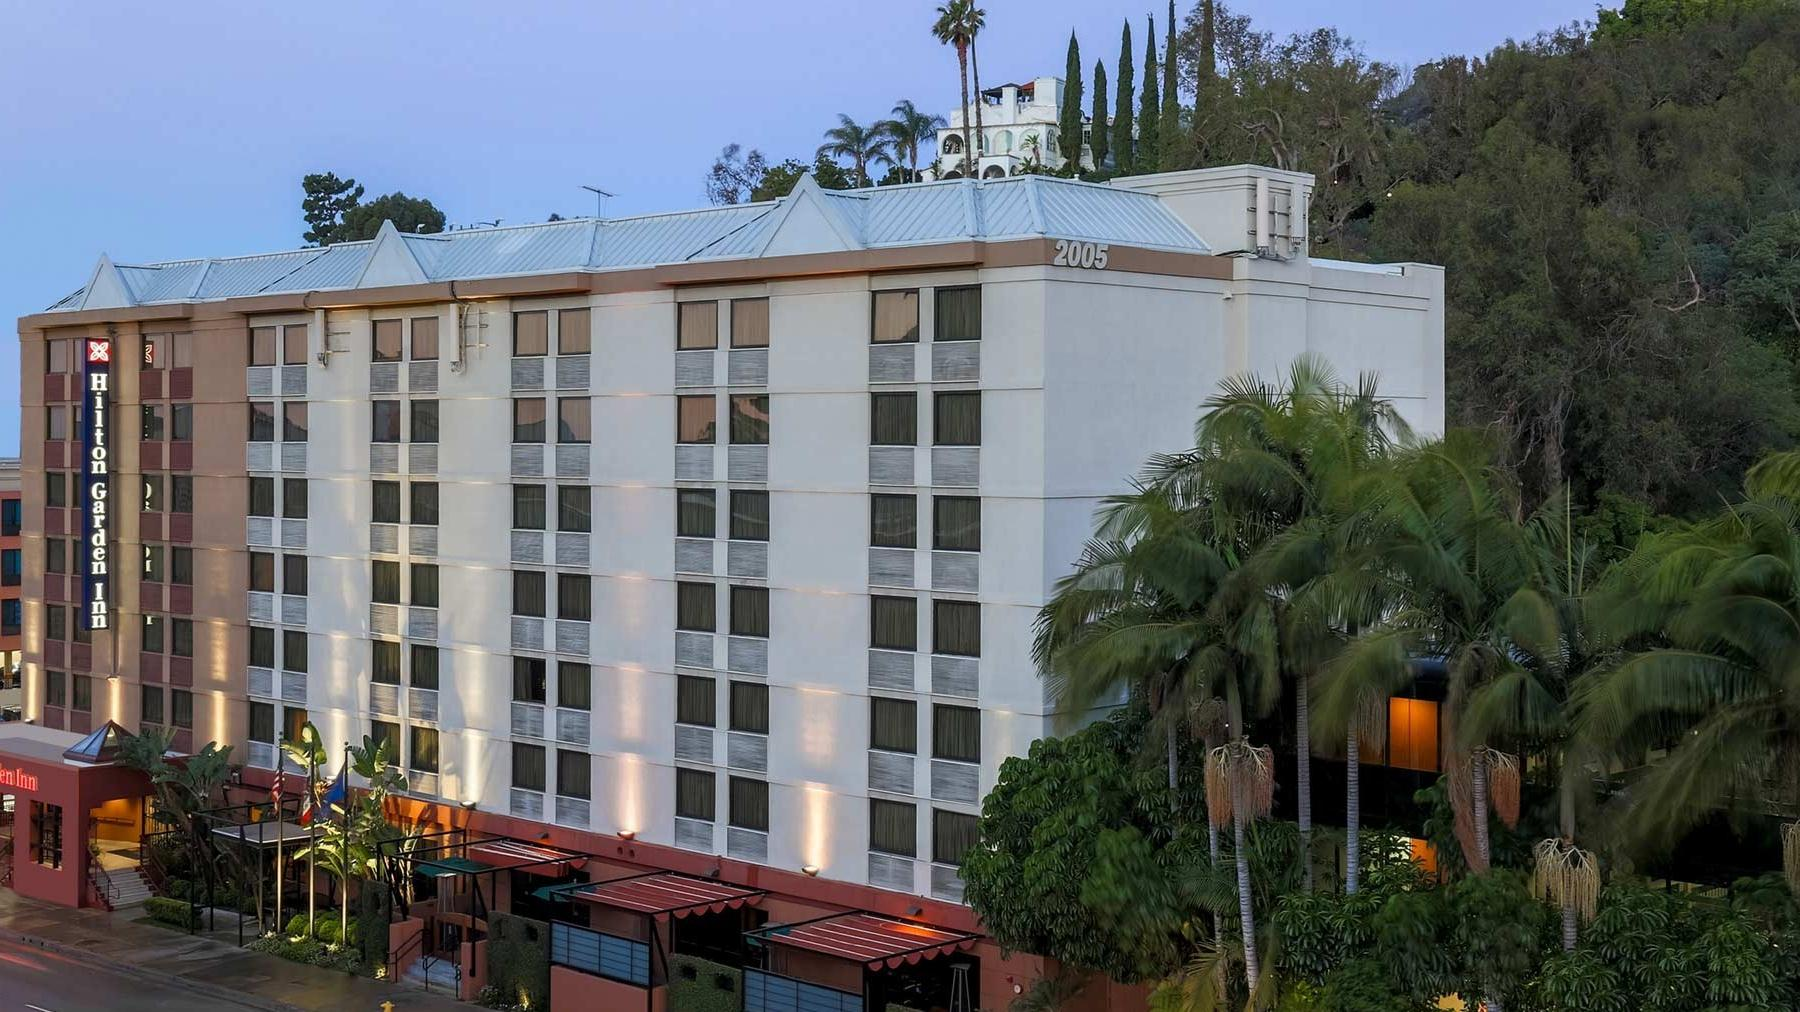 meetings and events at hilton garden inn los angeleshollywood los angeles ca us - Hilton Garden Inn Los Angeles